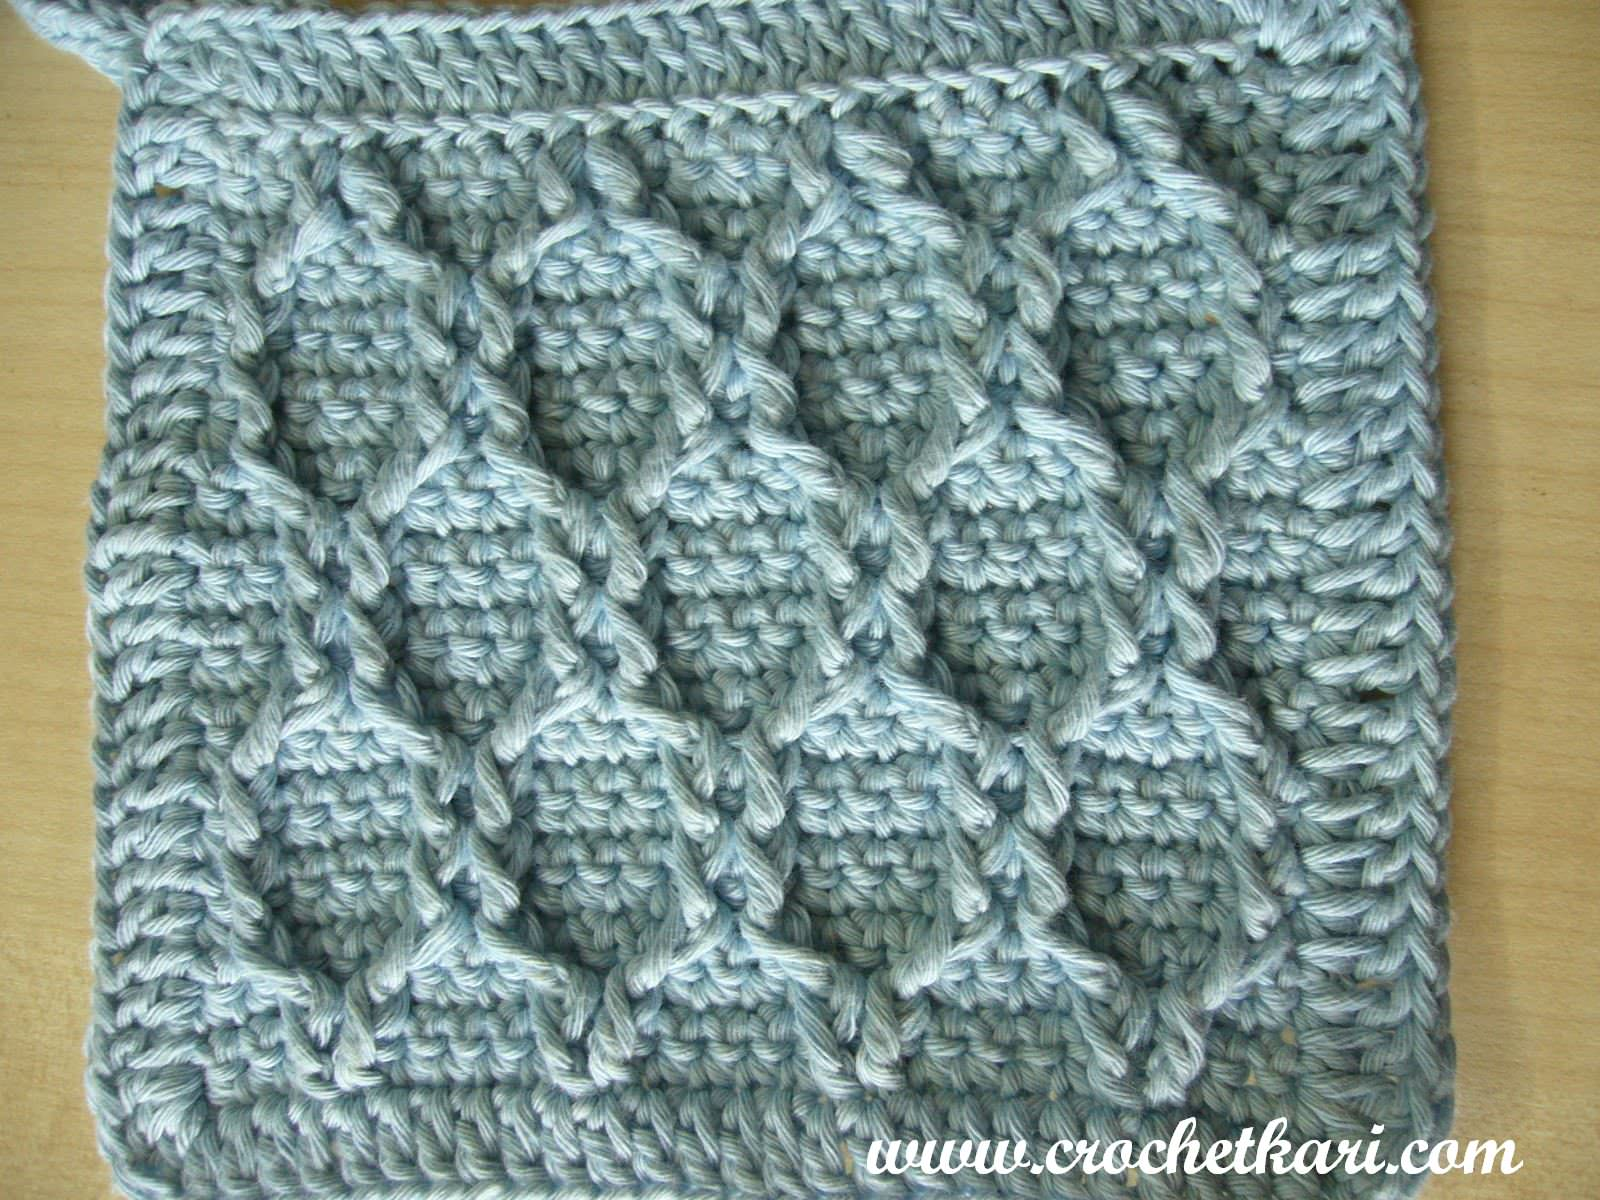 Crochetkari Crochet Honeycomb Washcloth